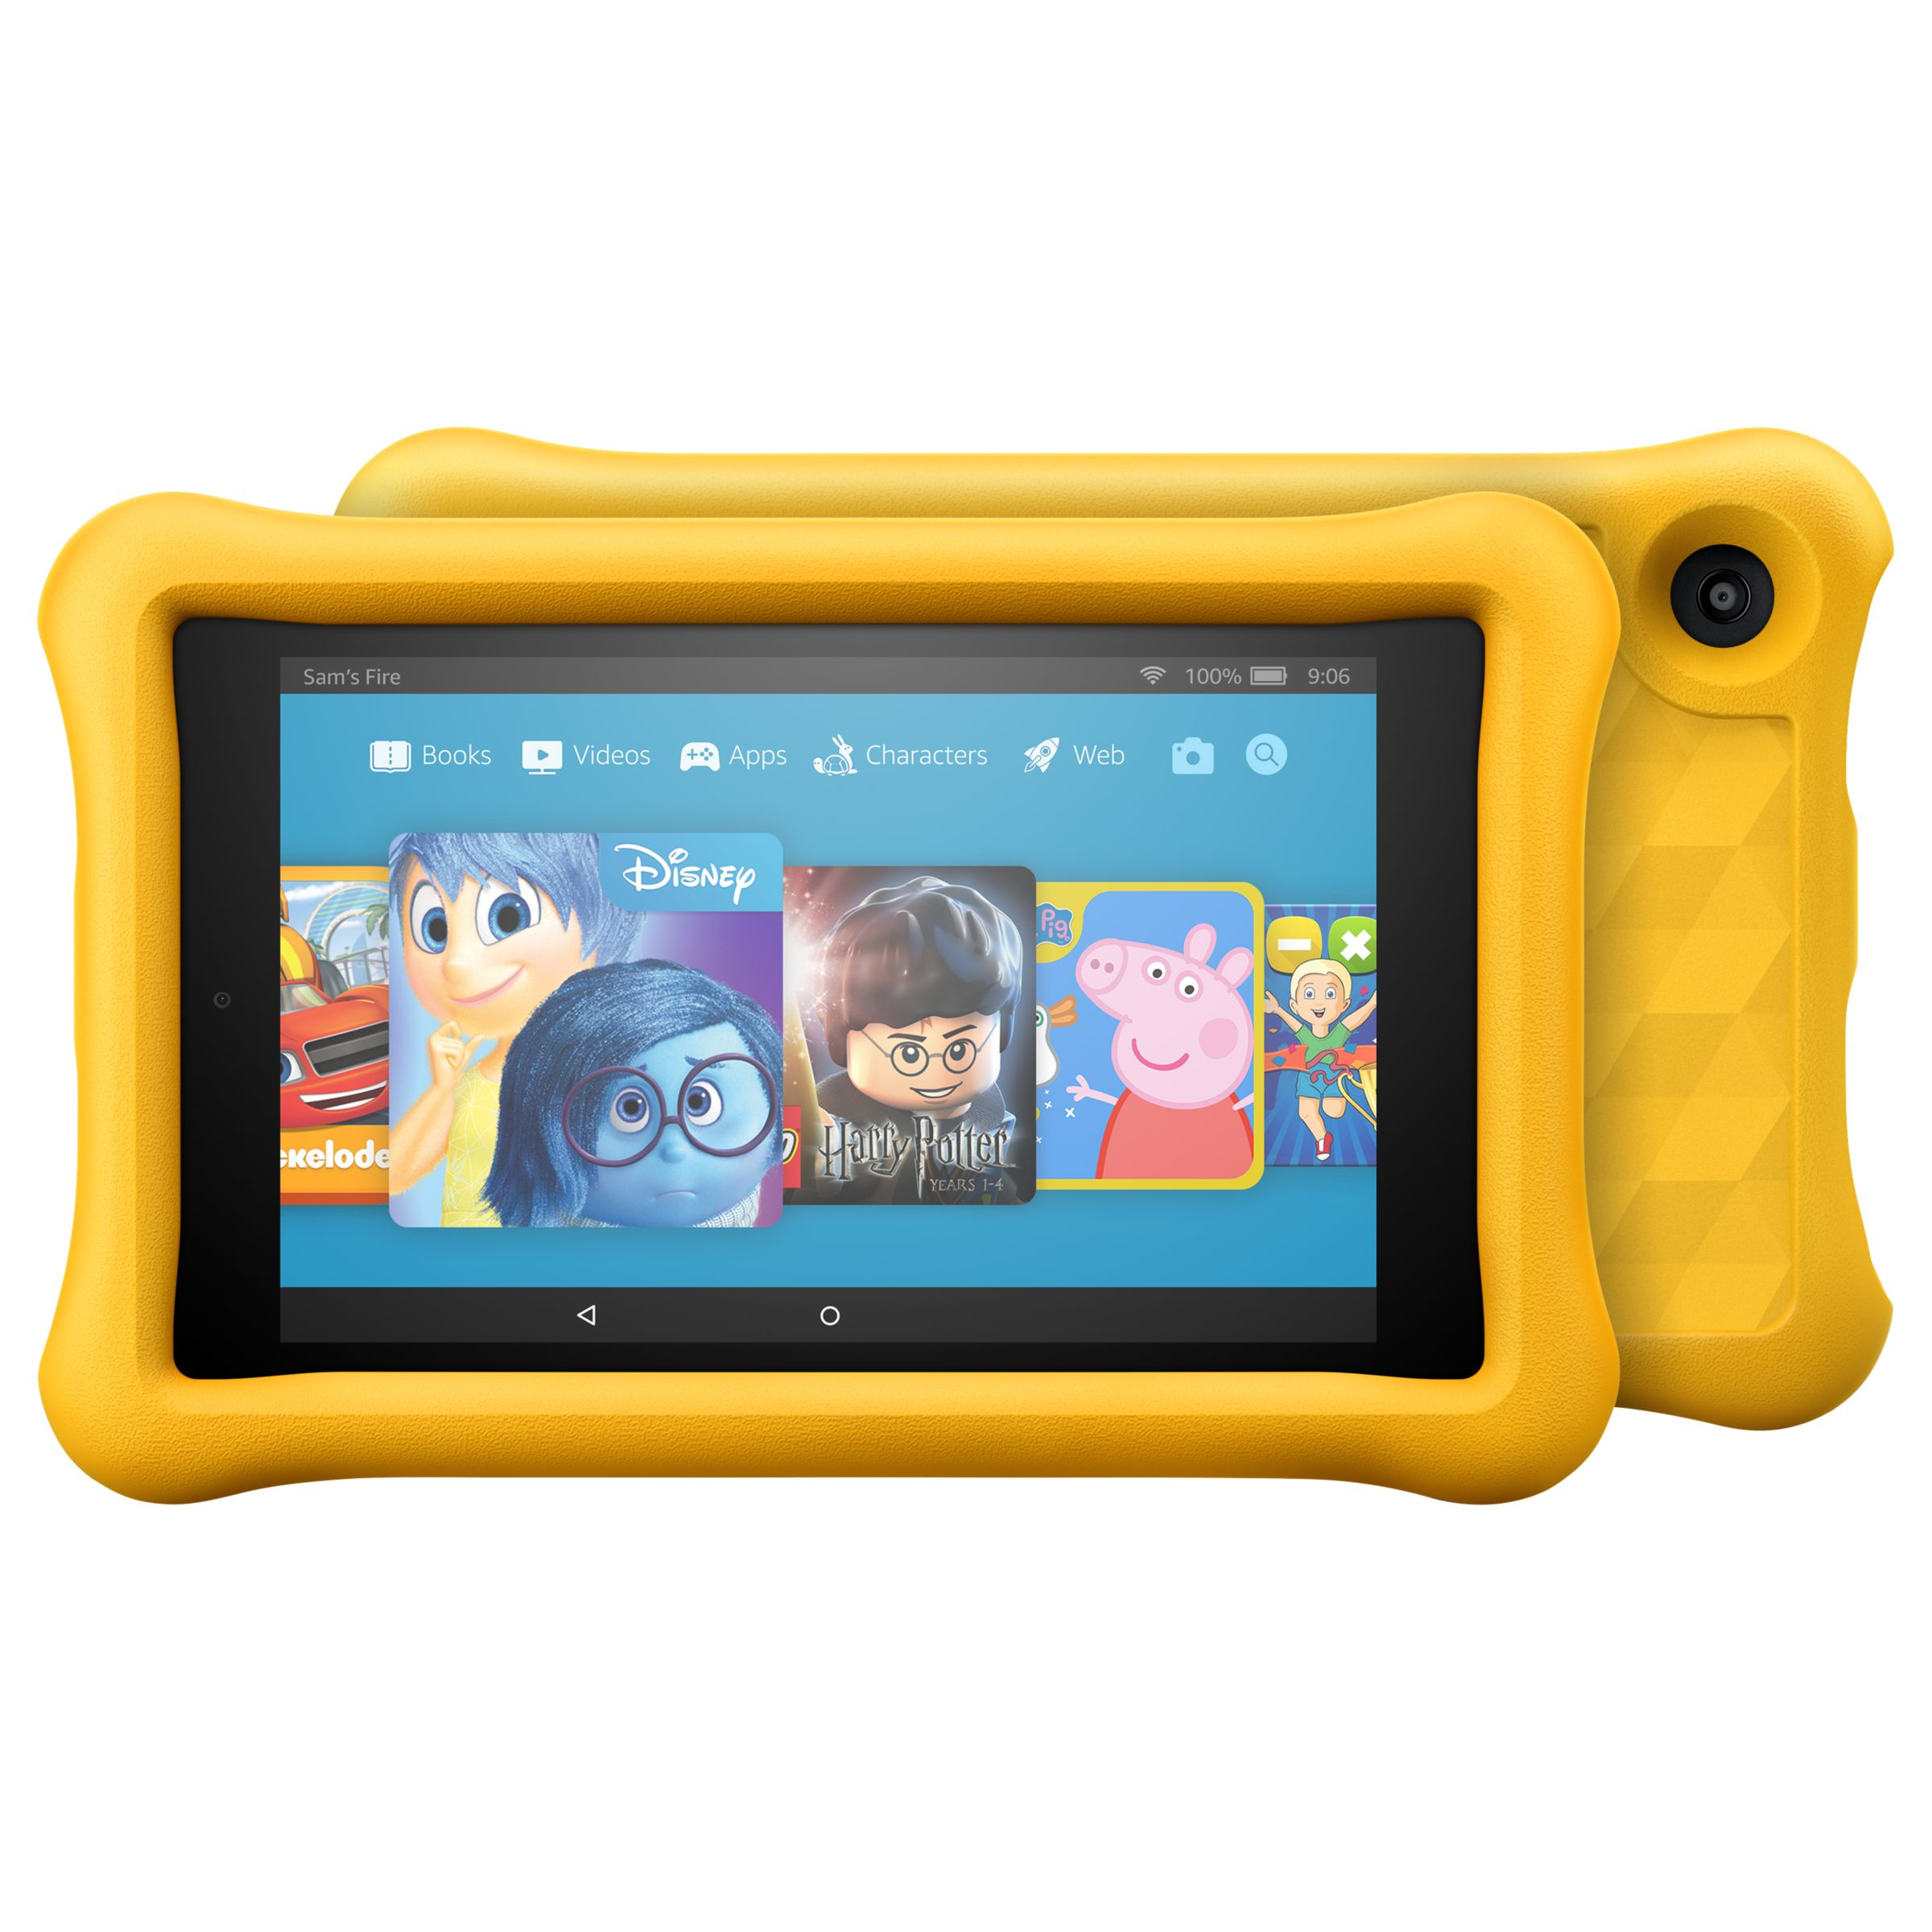 "Amazon Fire HD 8 Kids Edition Tablet with Kid-Proof Case, Quad-core, Fire OS, Wi-Fi, 32GB, 8"", Yellow"